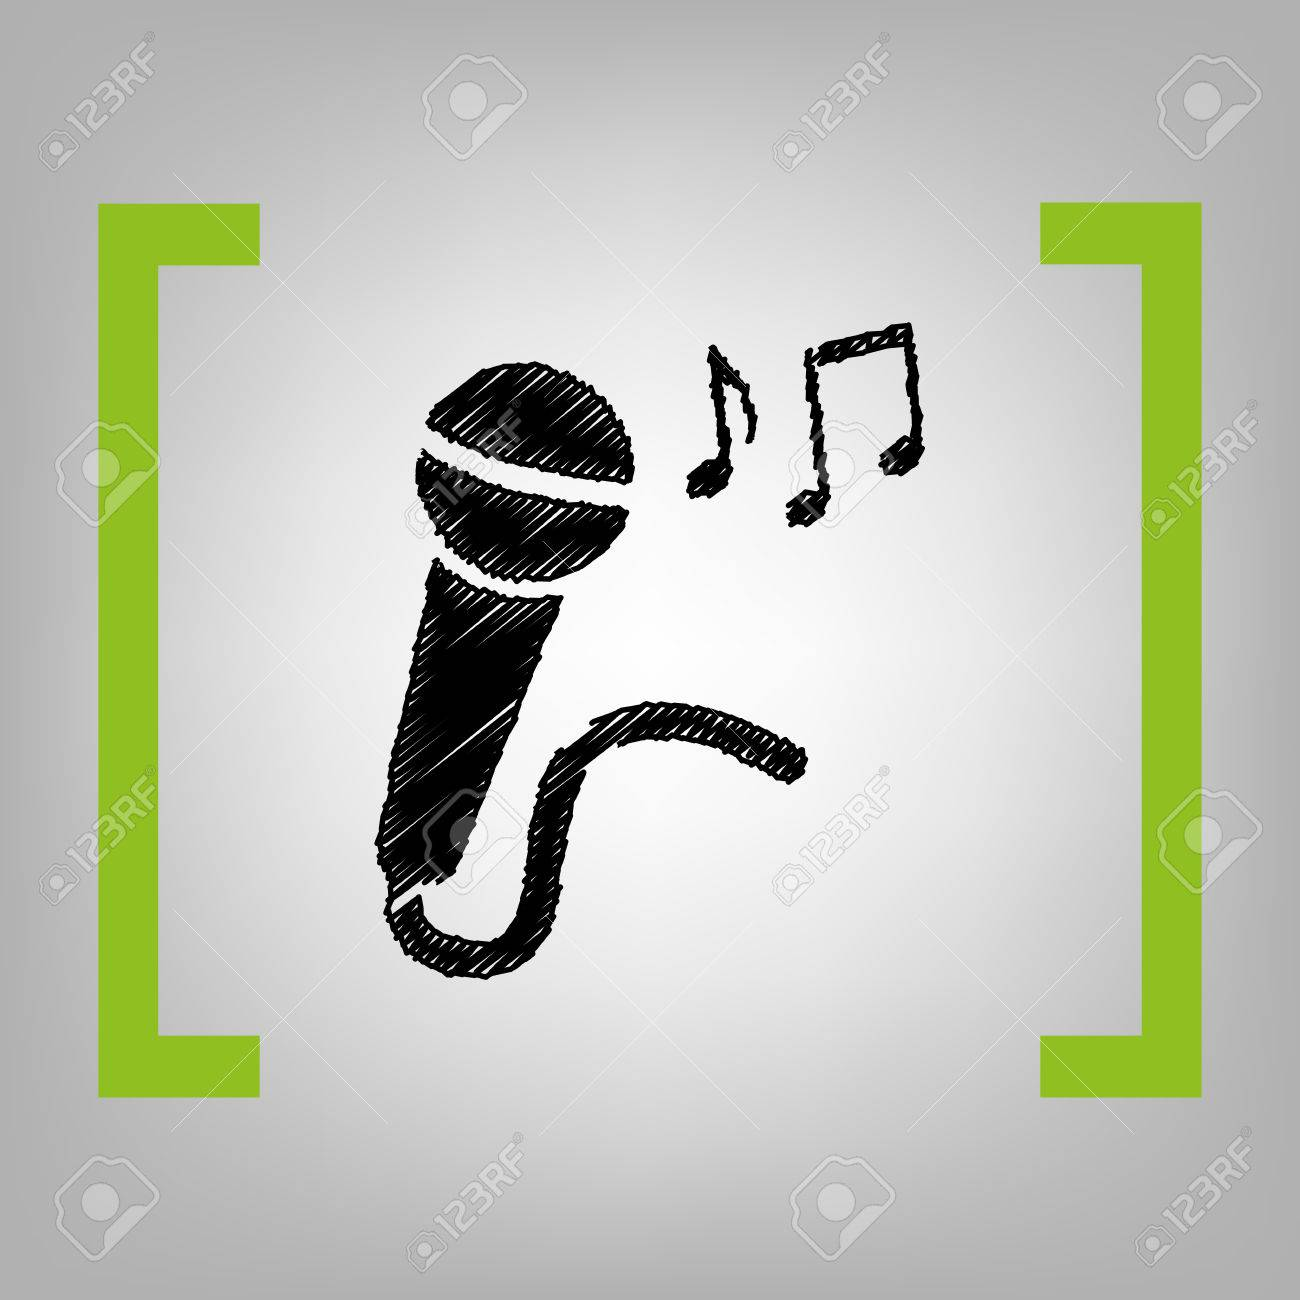 microphone sign with music notes vector black scribble icon